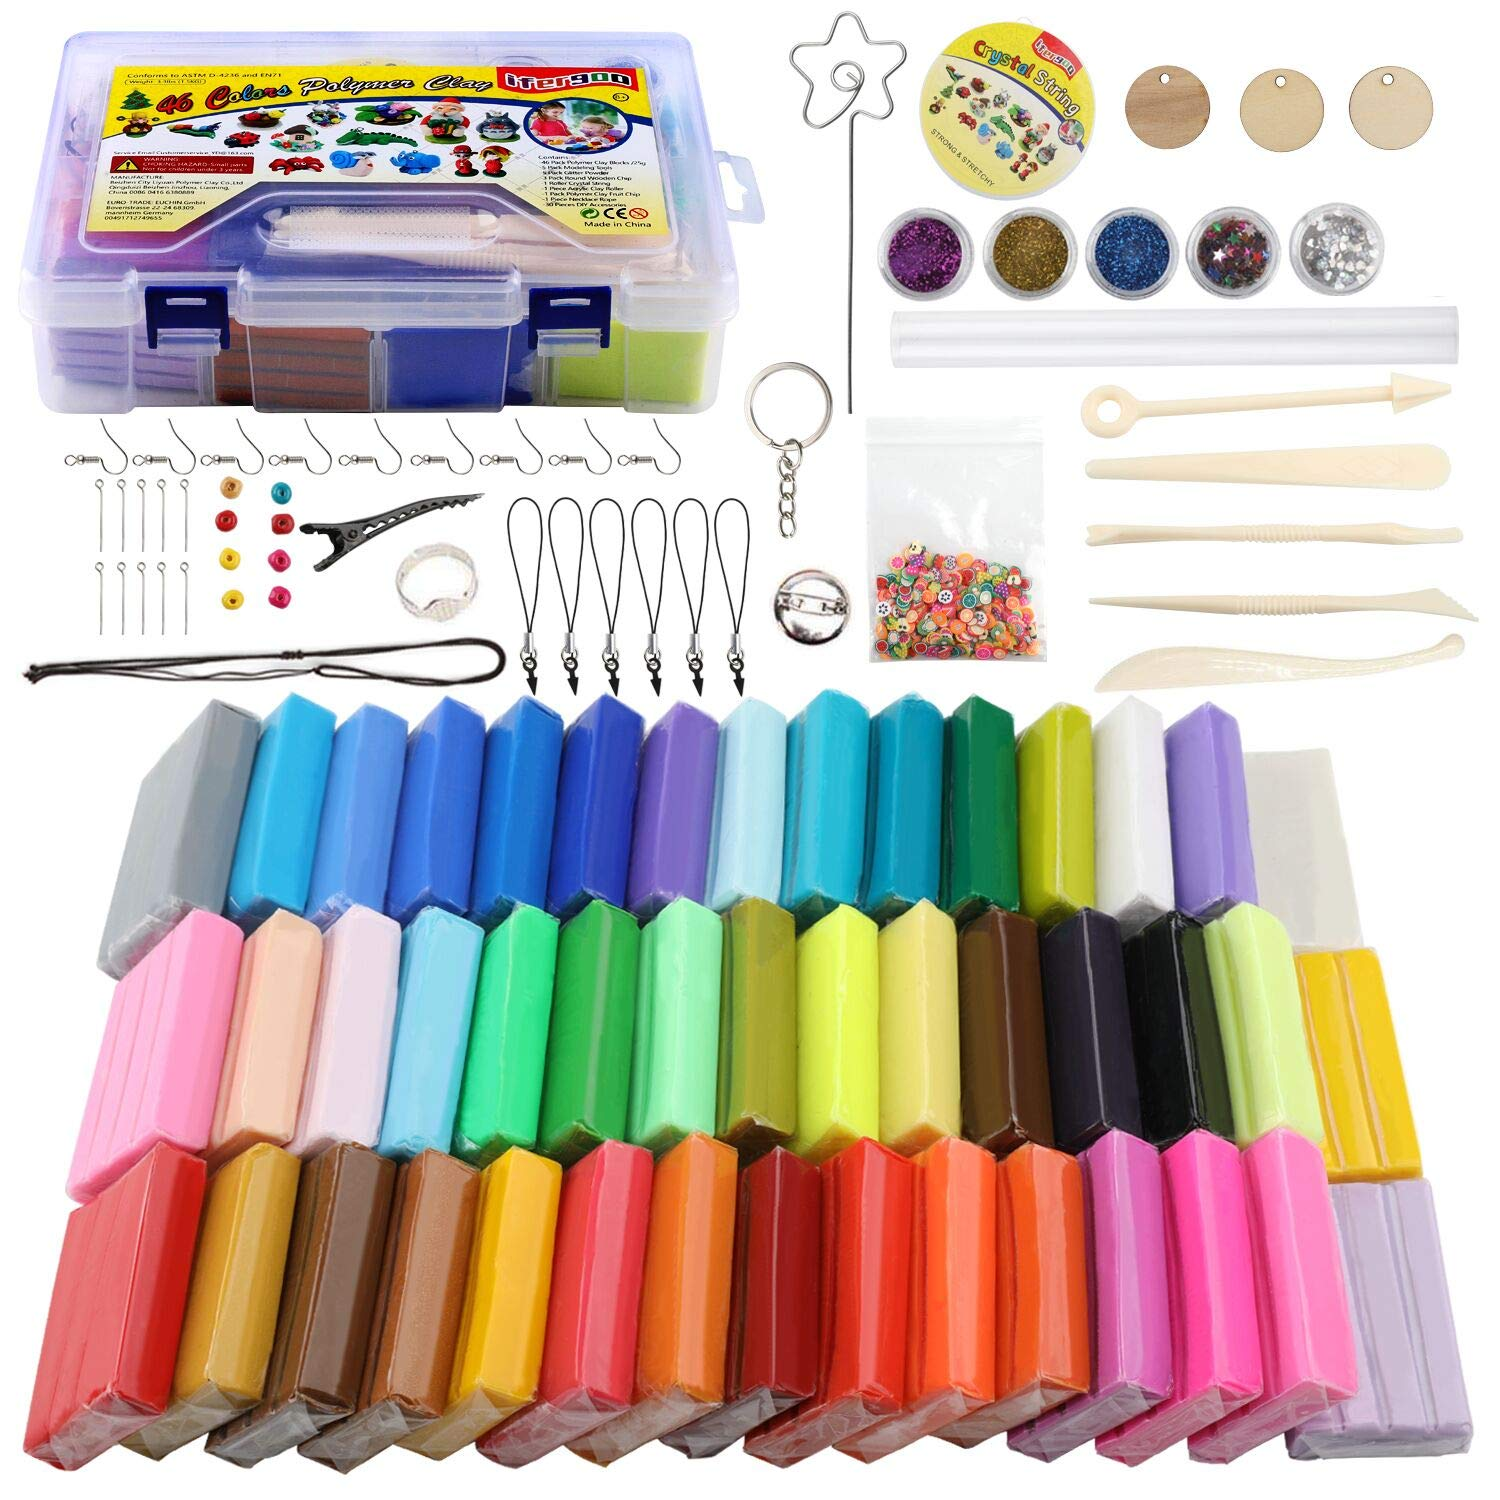 Polymer Clay Starter Kit, ifergoo 46 Colors Oven Bake Clay, DIY Modeling Clay Bockers, 5 Scuplting Tools, 5 Colors Mica Powder, 40 Jewelry Accessories for Kids and Adult (46 Colors Polymer Clay Kit)